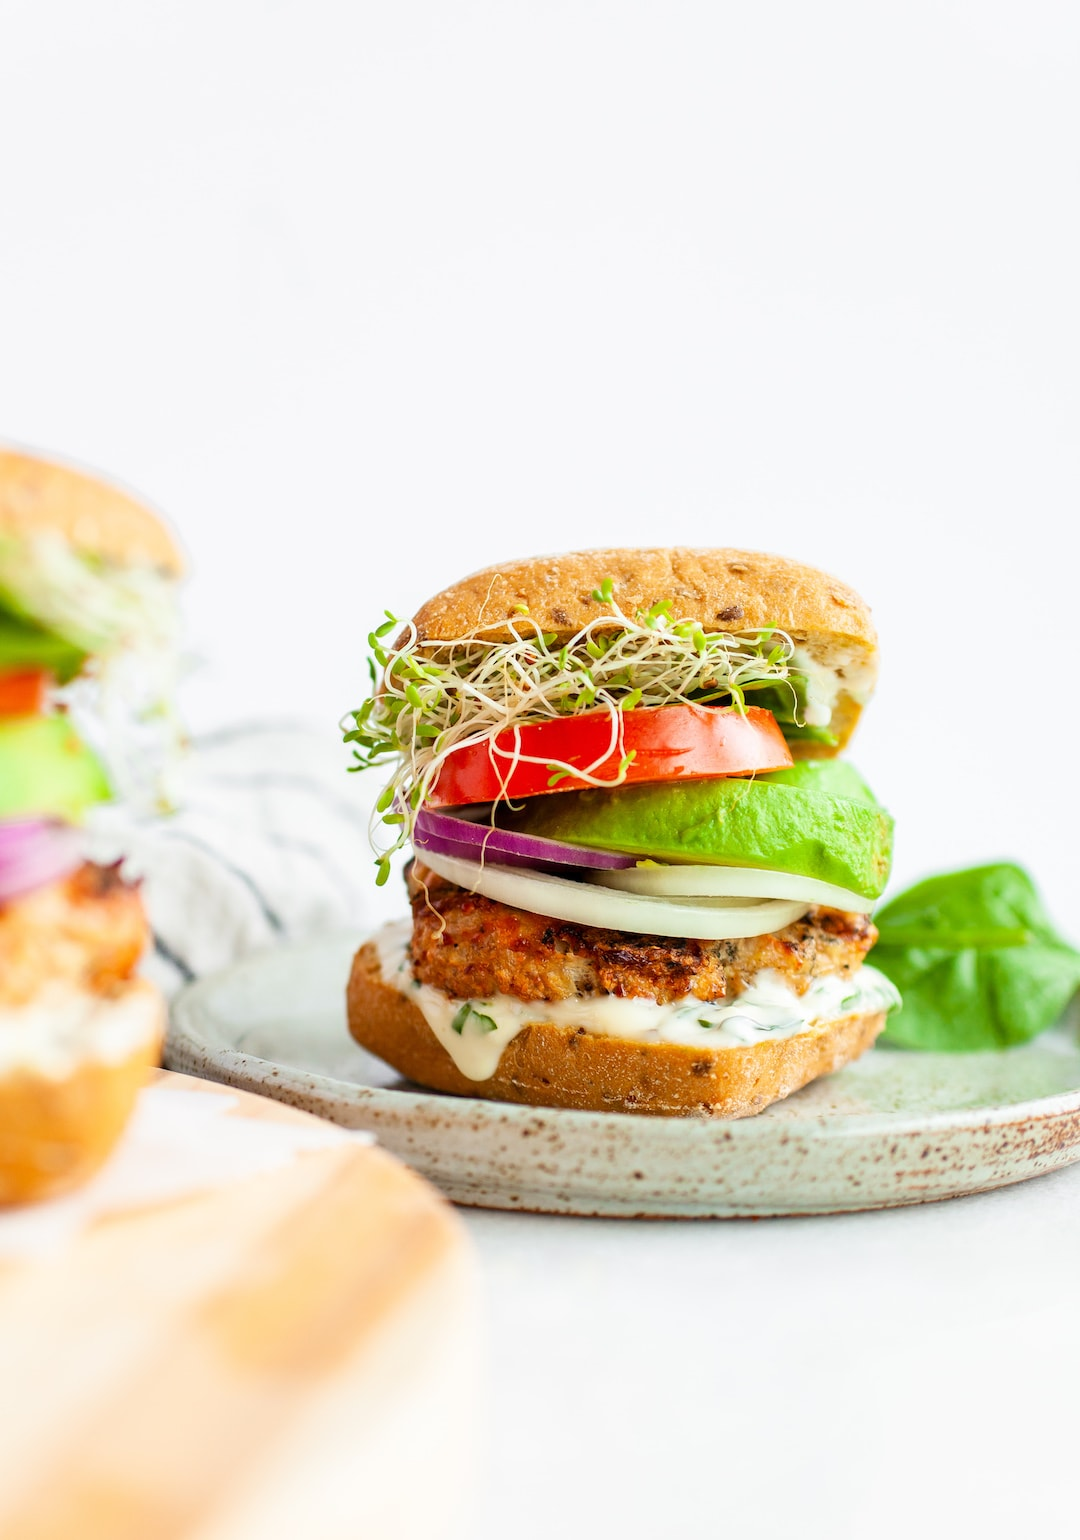 turkey burgers stacked with avocado, tomato, and sprouts on a grain bun